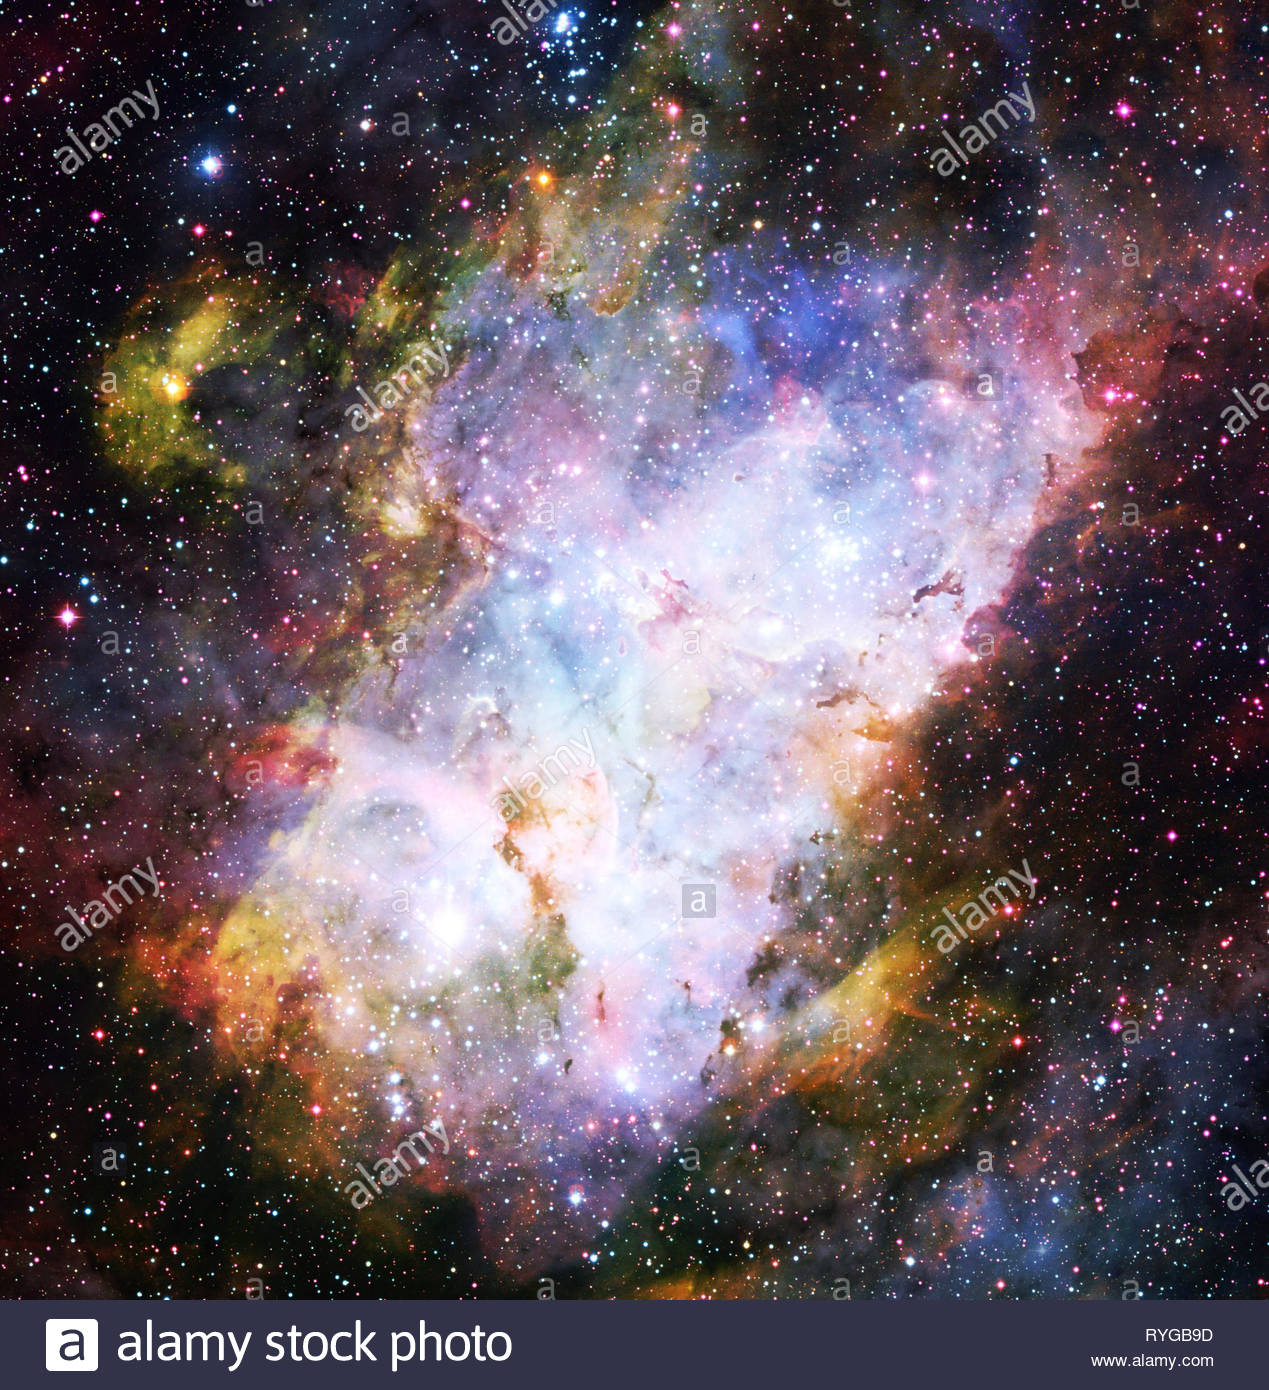 composite of stars and nebula for an imaginary space image background - Stock Image